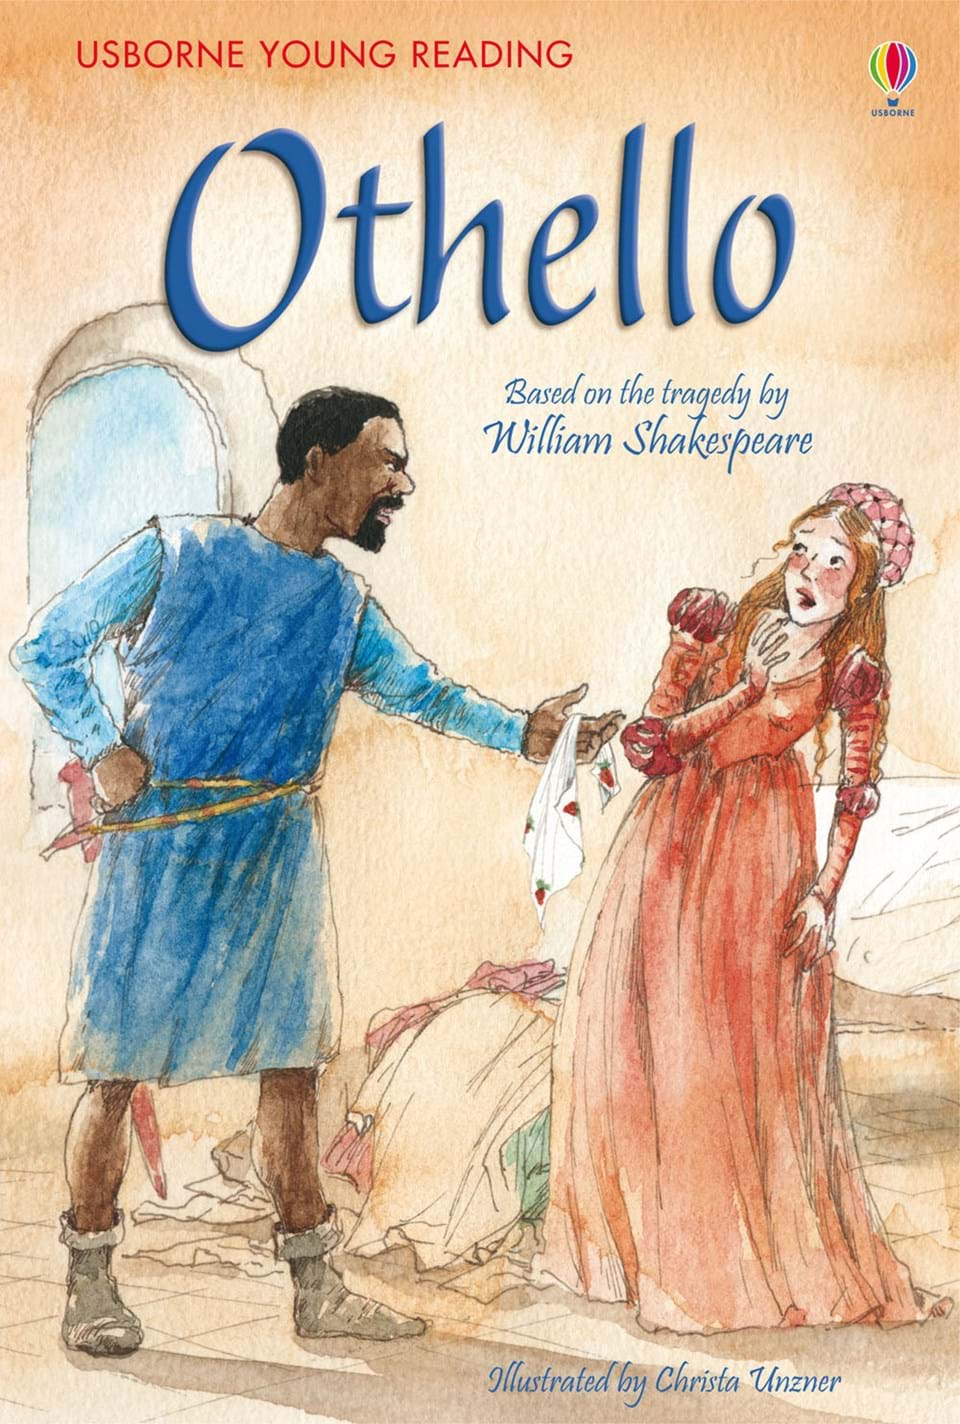 othello leadership A summary of themes in william shakespeare's othello learn exactly what happened in this chapter, scene, or section of othello and what it means perfect for acing essays, tests, and quizzes, as well as for writing lesson plans.